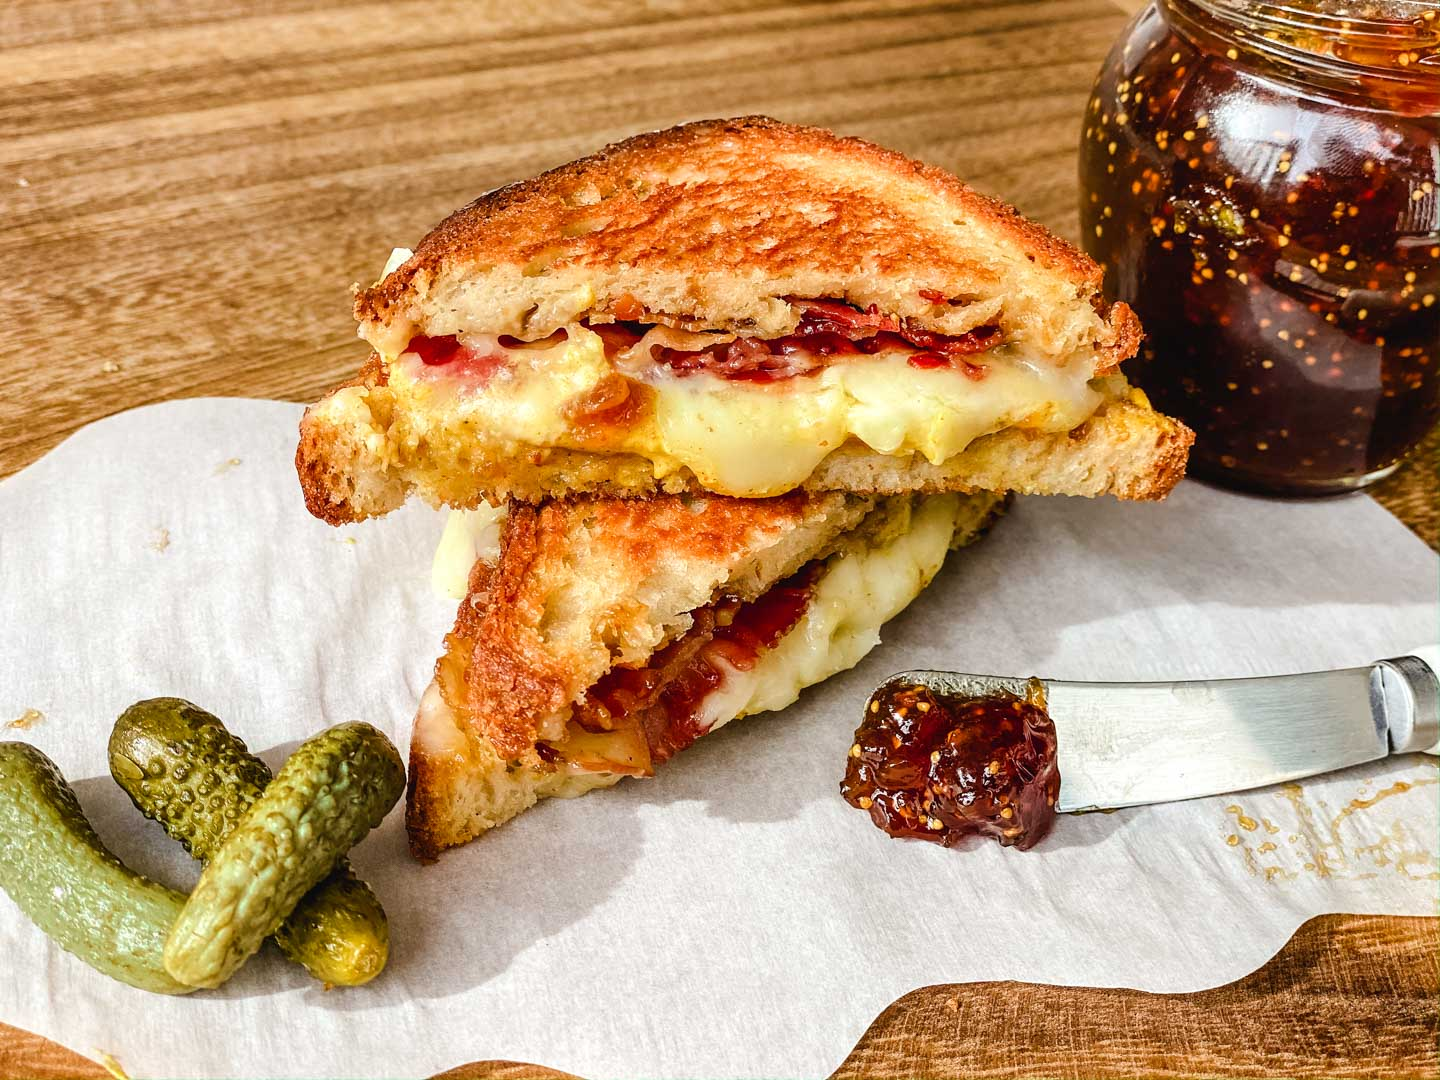 Grilled cheese with a jar of fig spread with pickles off to the side.